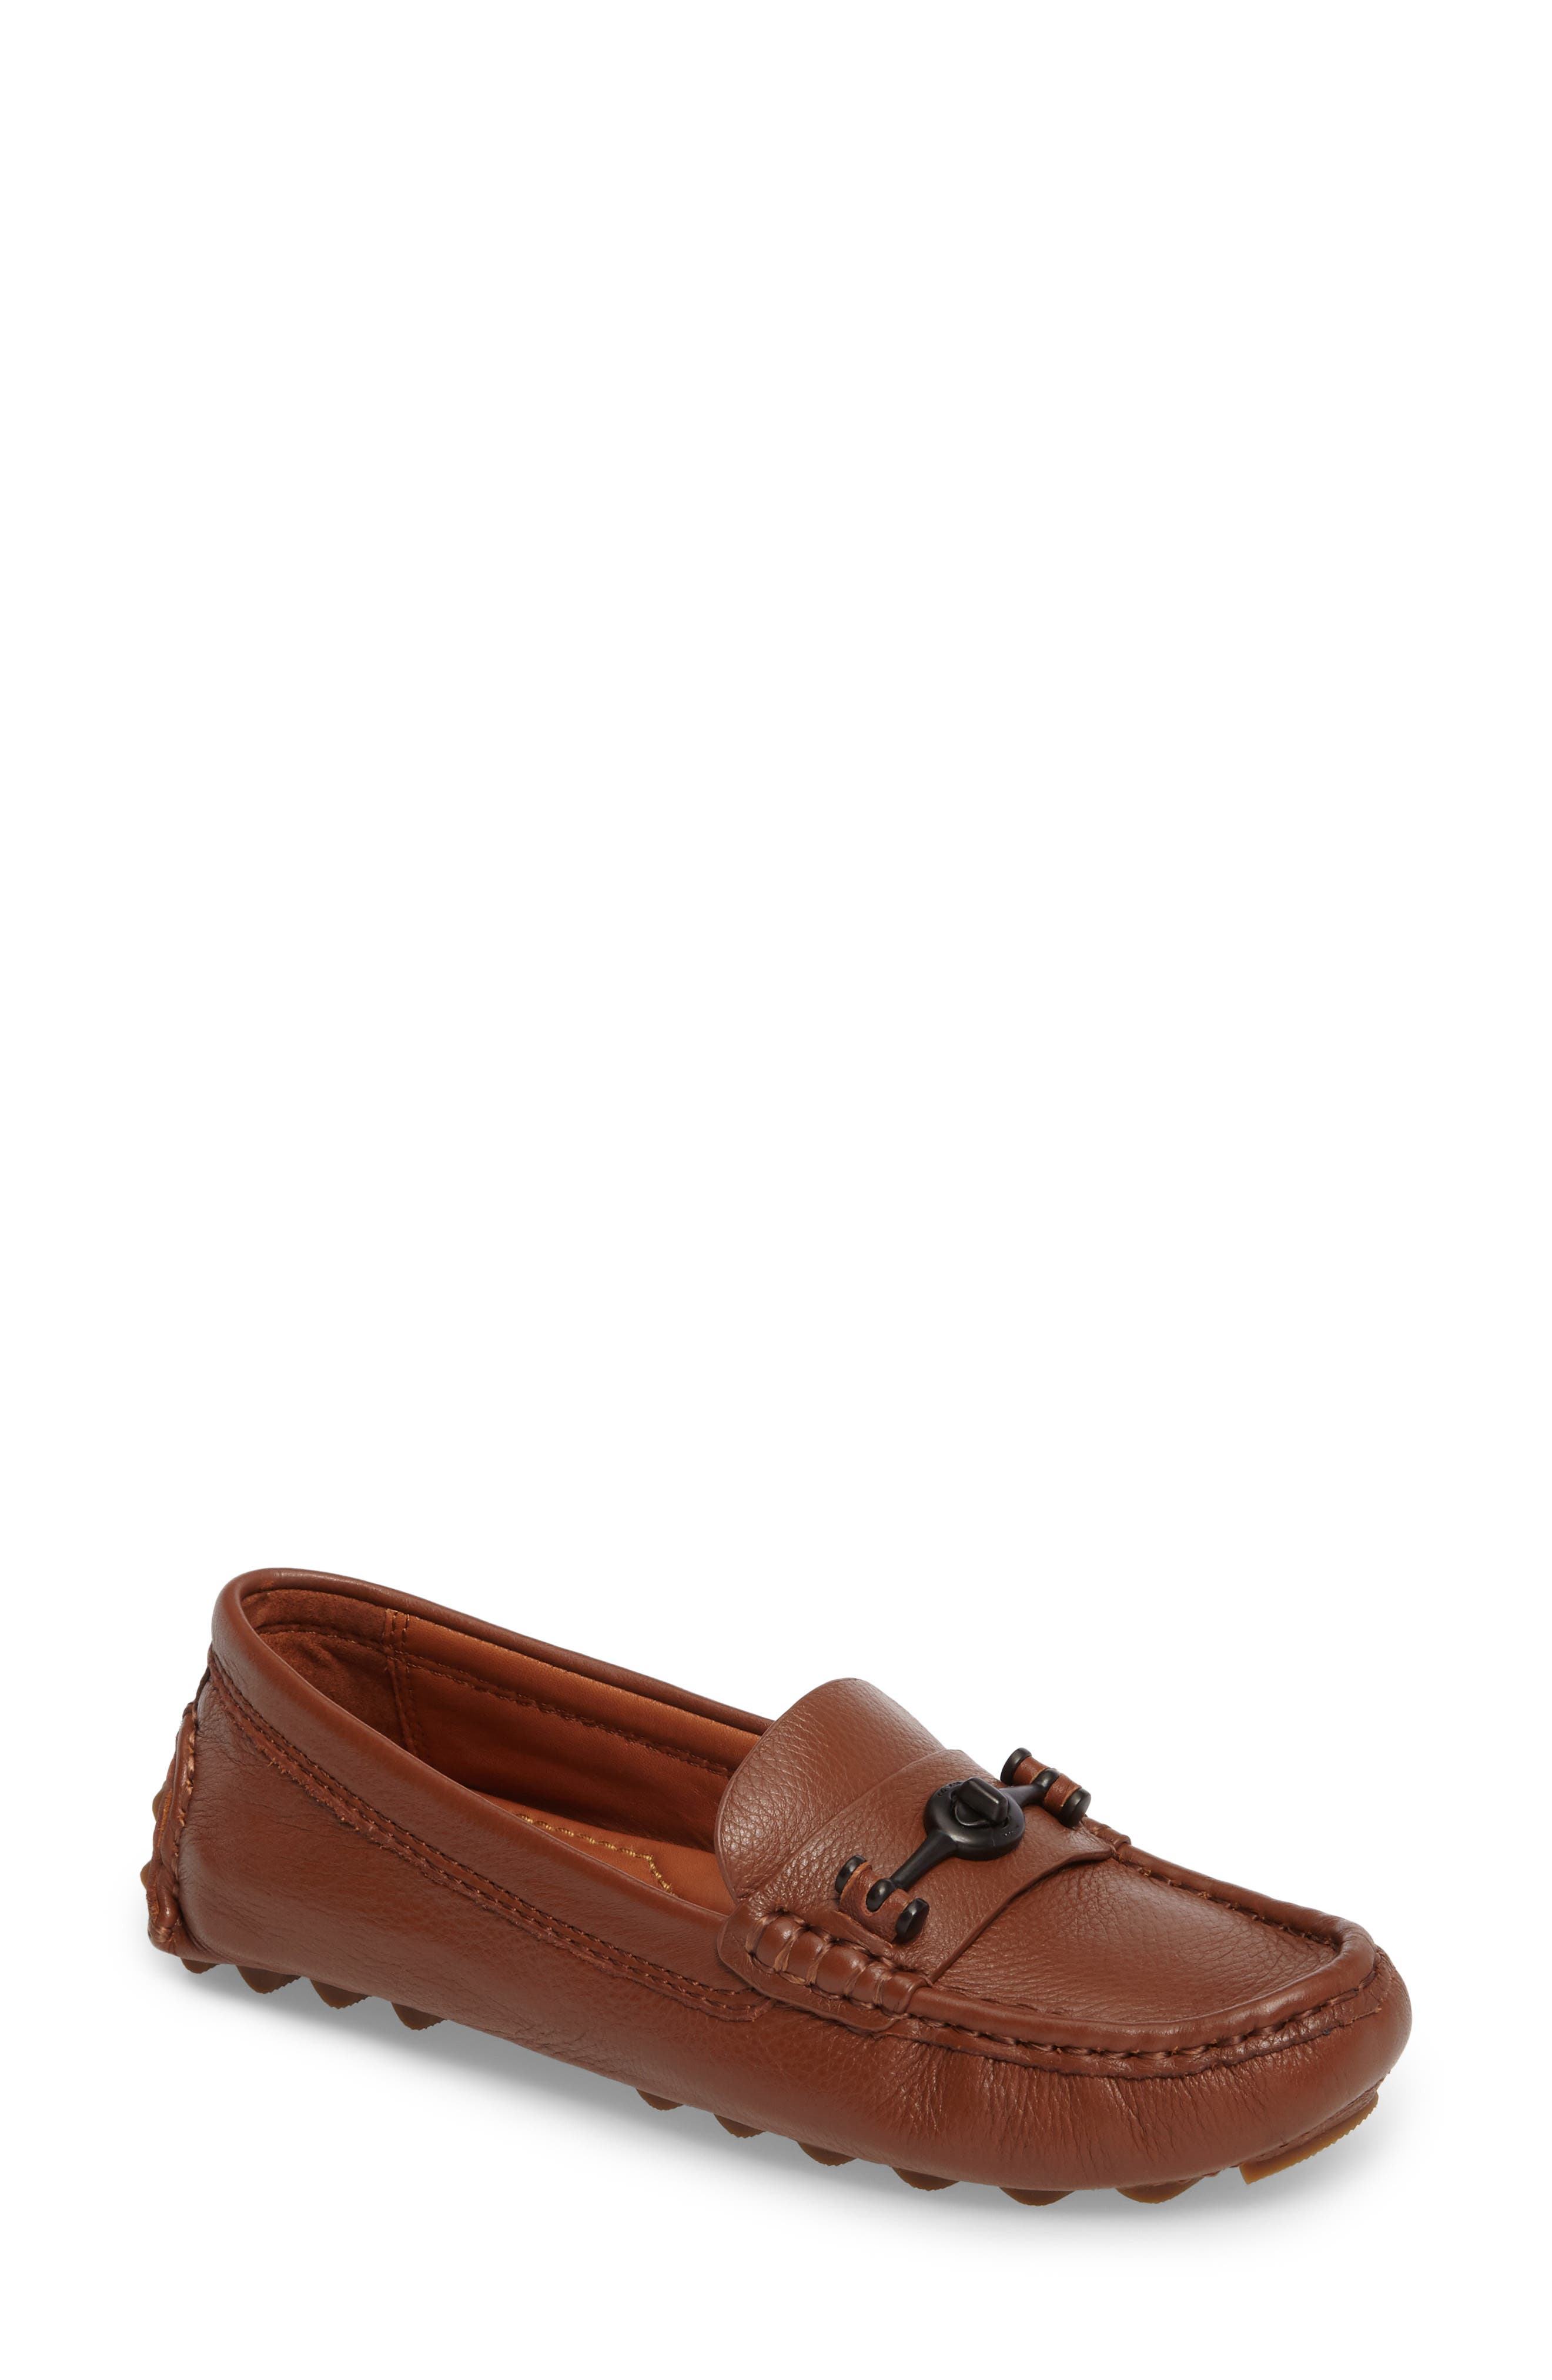 Crosby Driver Loafer,                         Main,                         color, SADDLE LEATHER